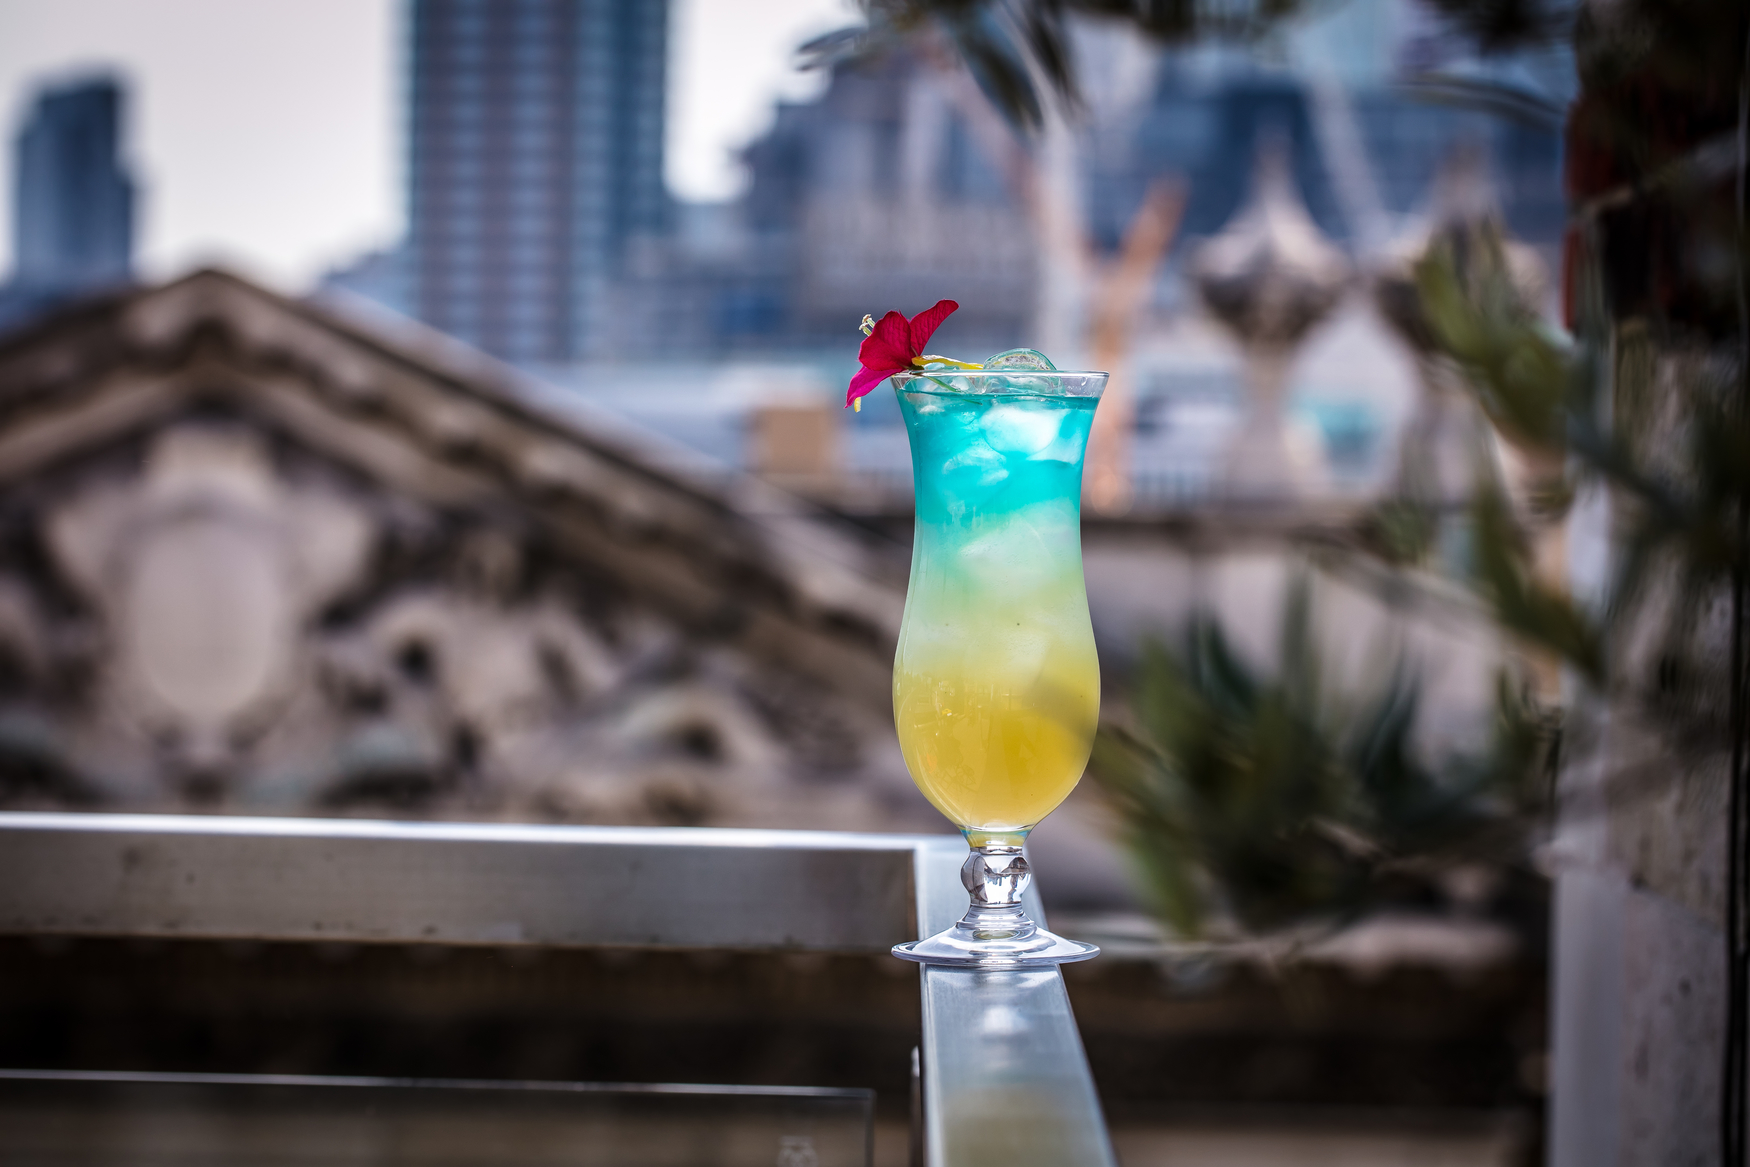 Cocktail on a wall at a rooftop london bar